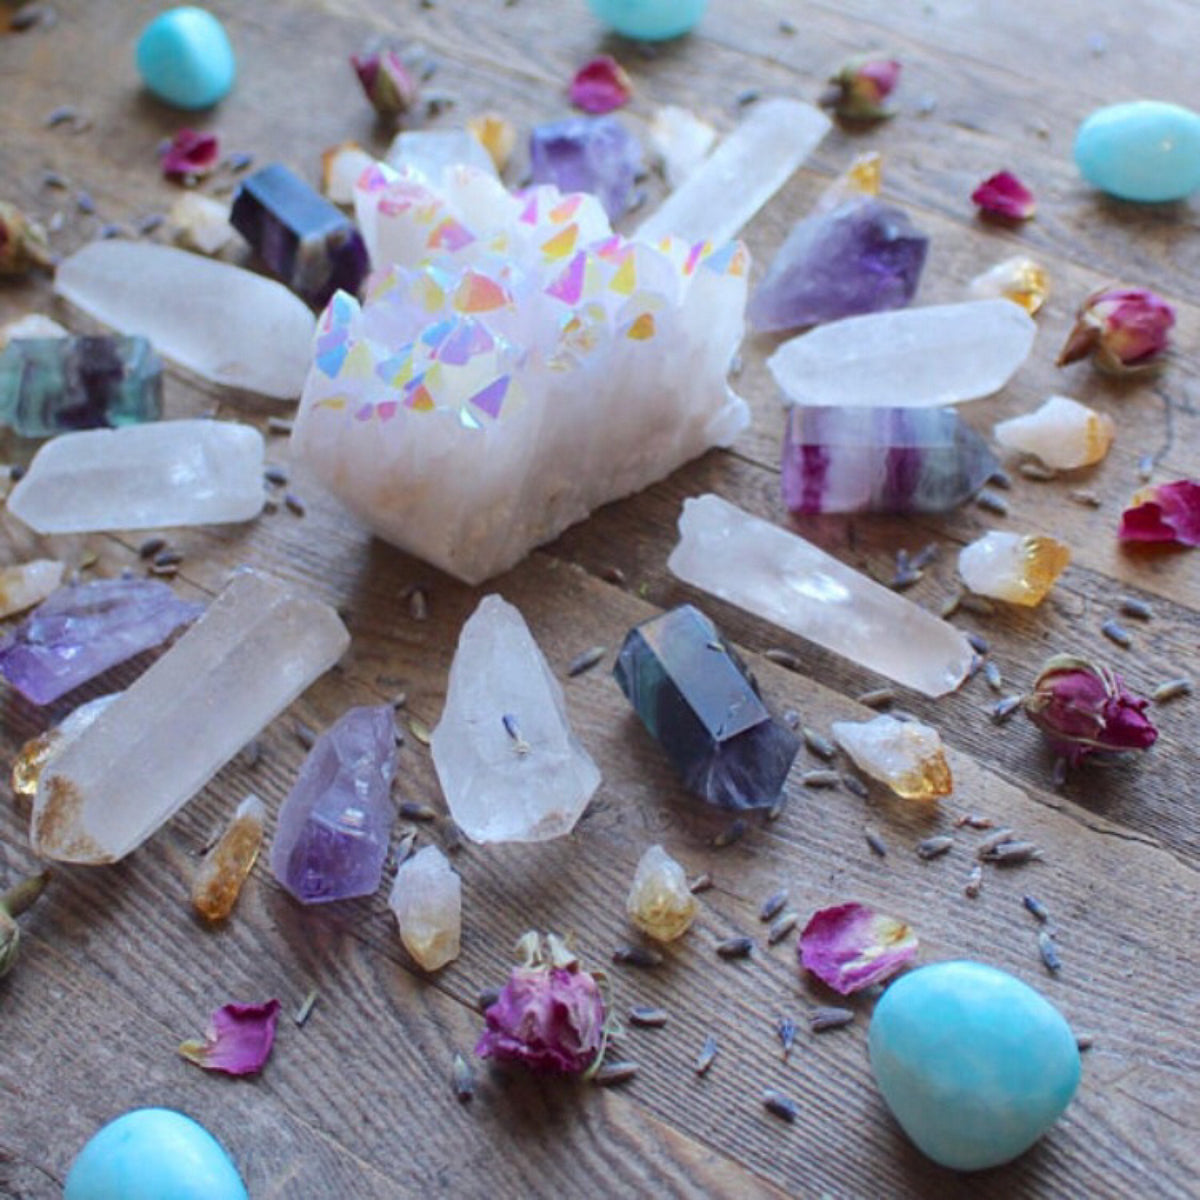 Crystal Healing Workshop | Beginner Basics